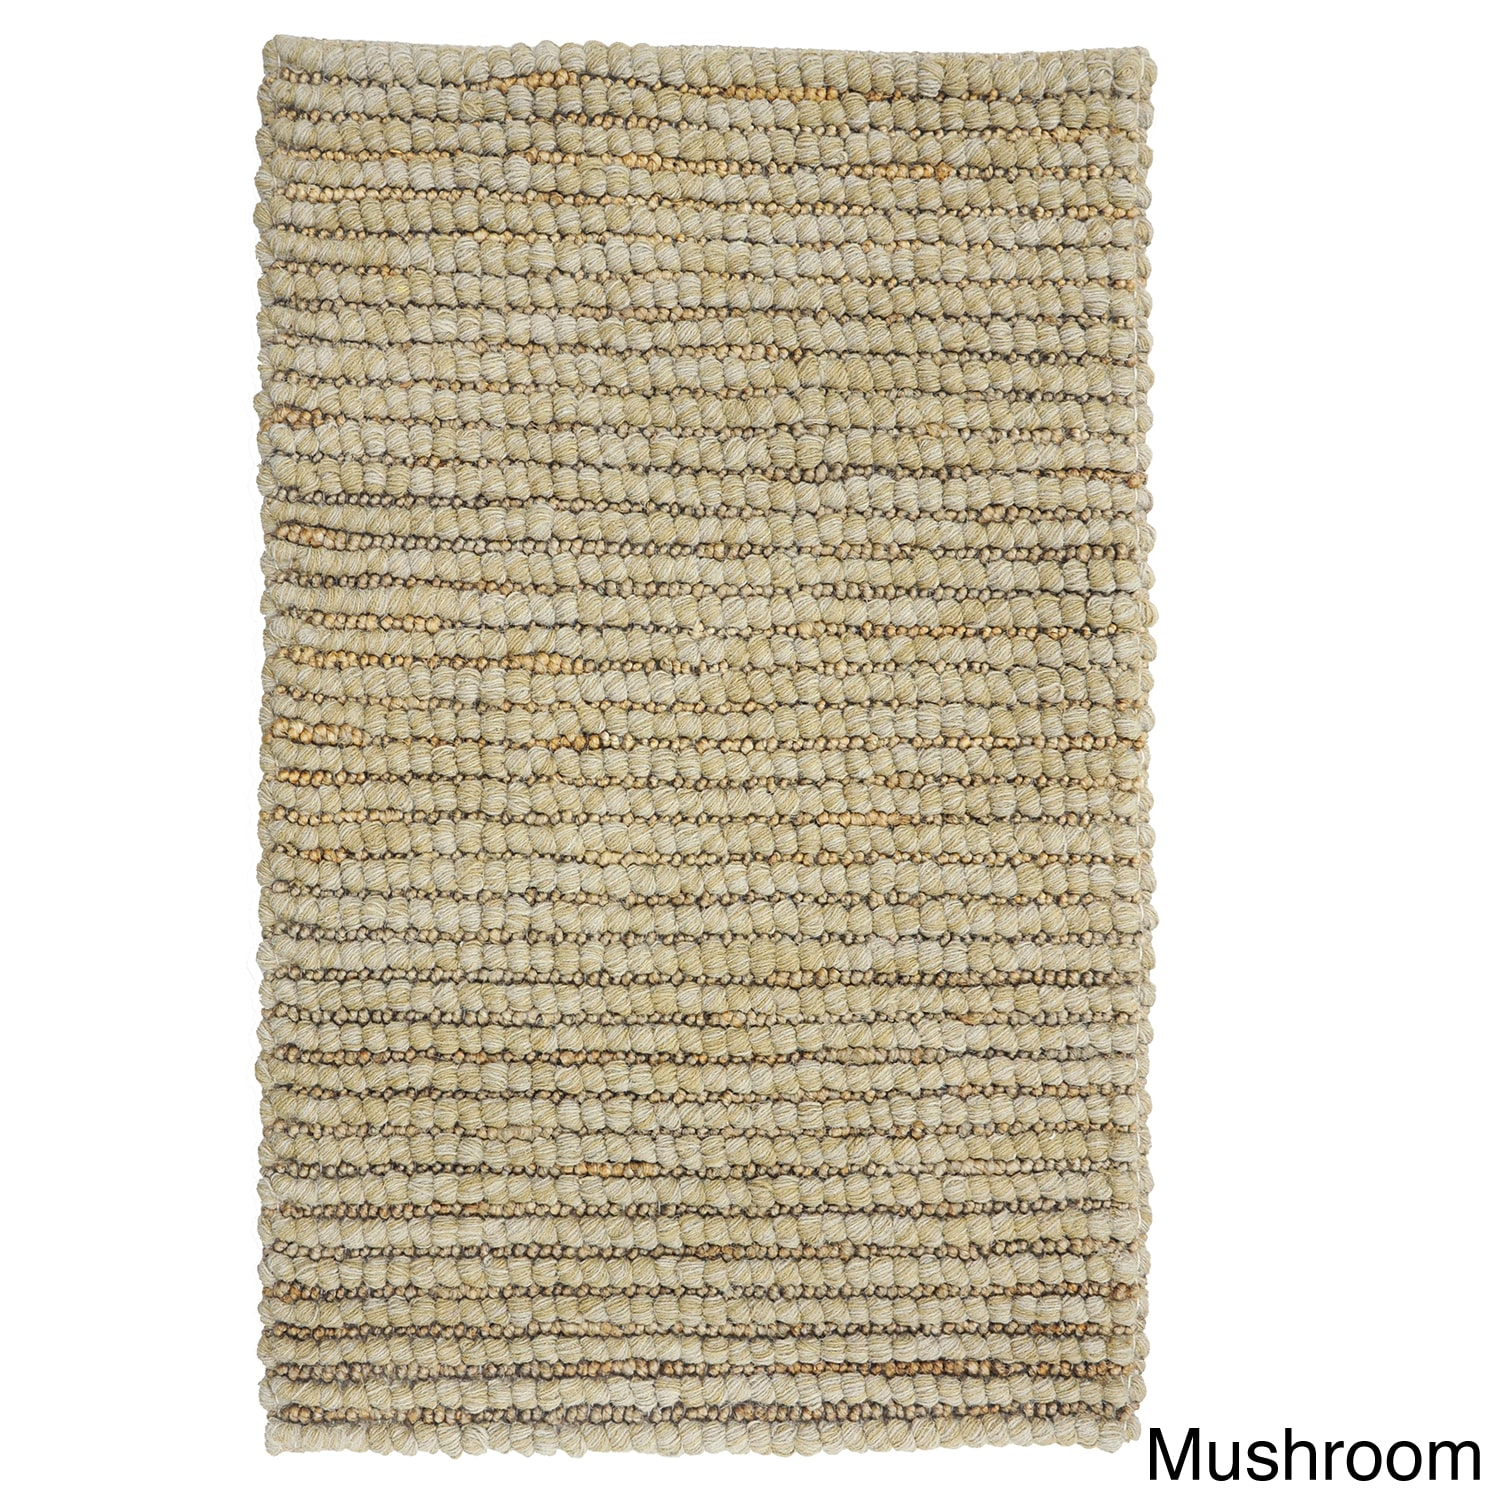 Kosas Home  Handwoven Santa Clarita Wool and Jute Grey Rug (5' x 8')